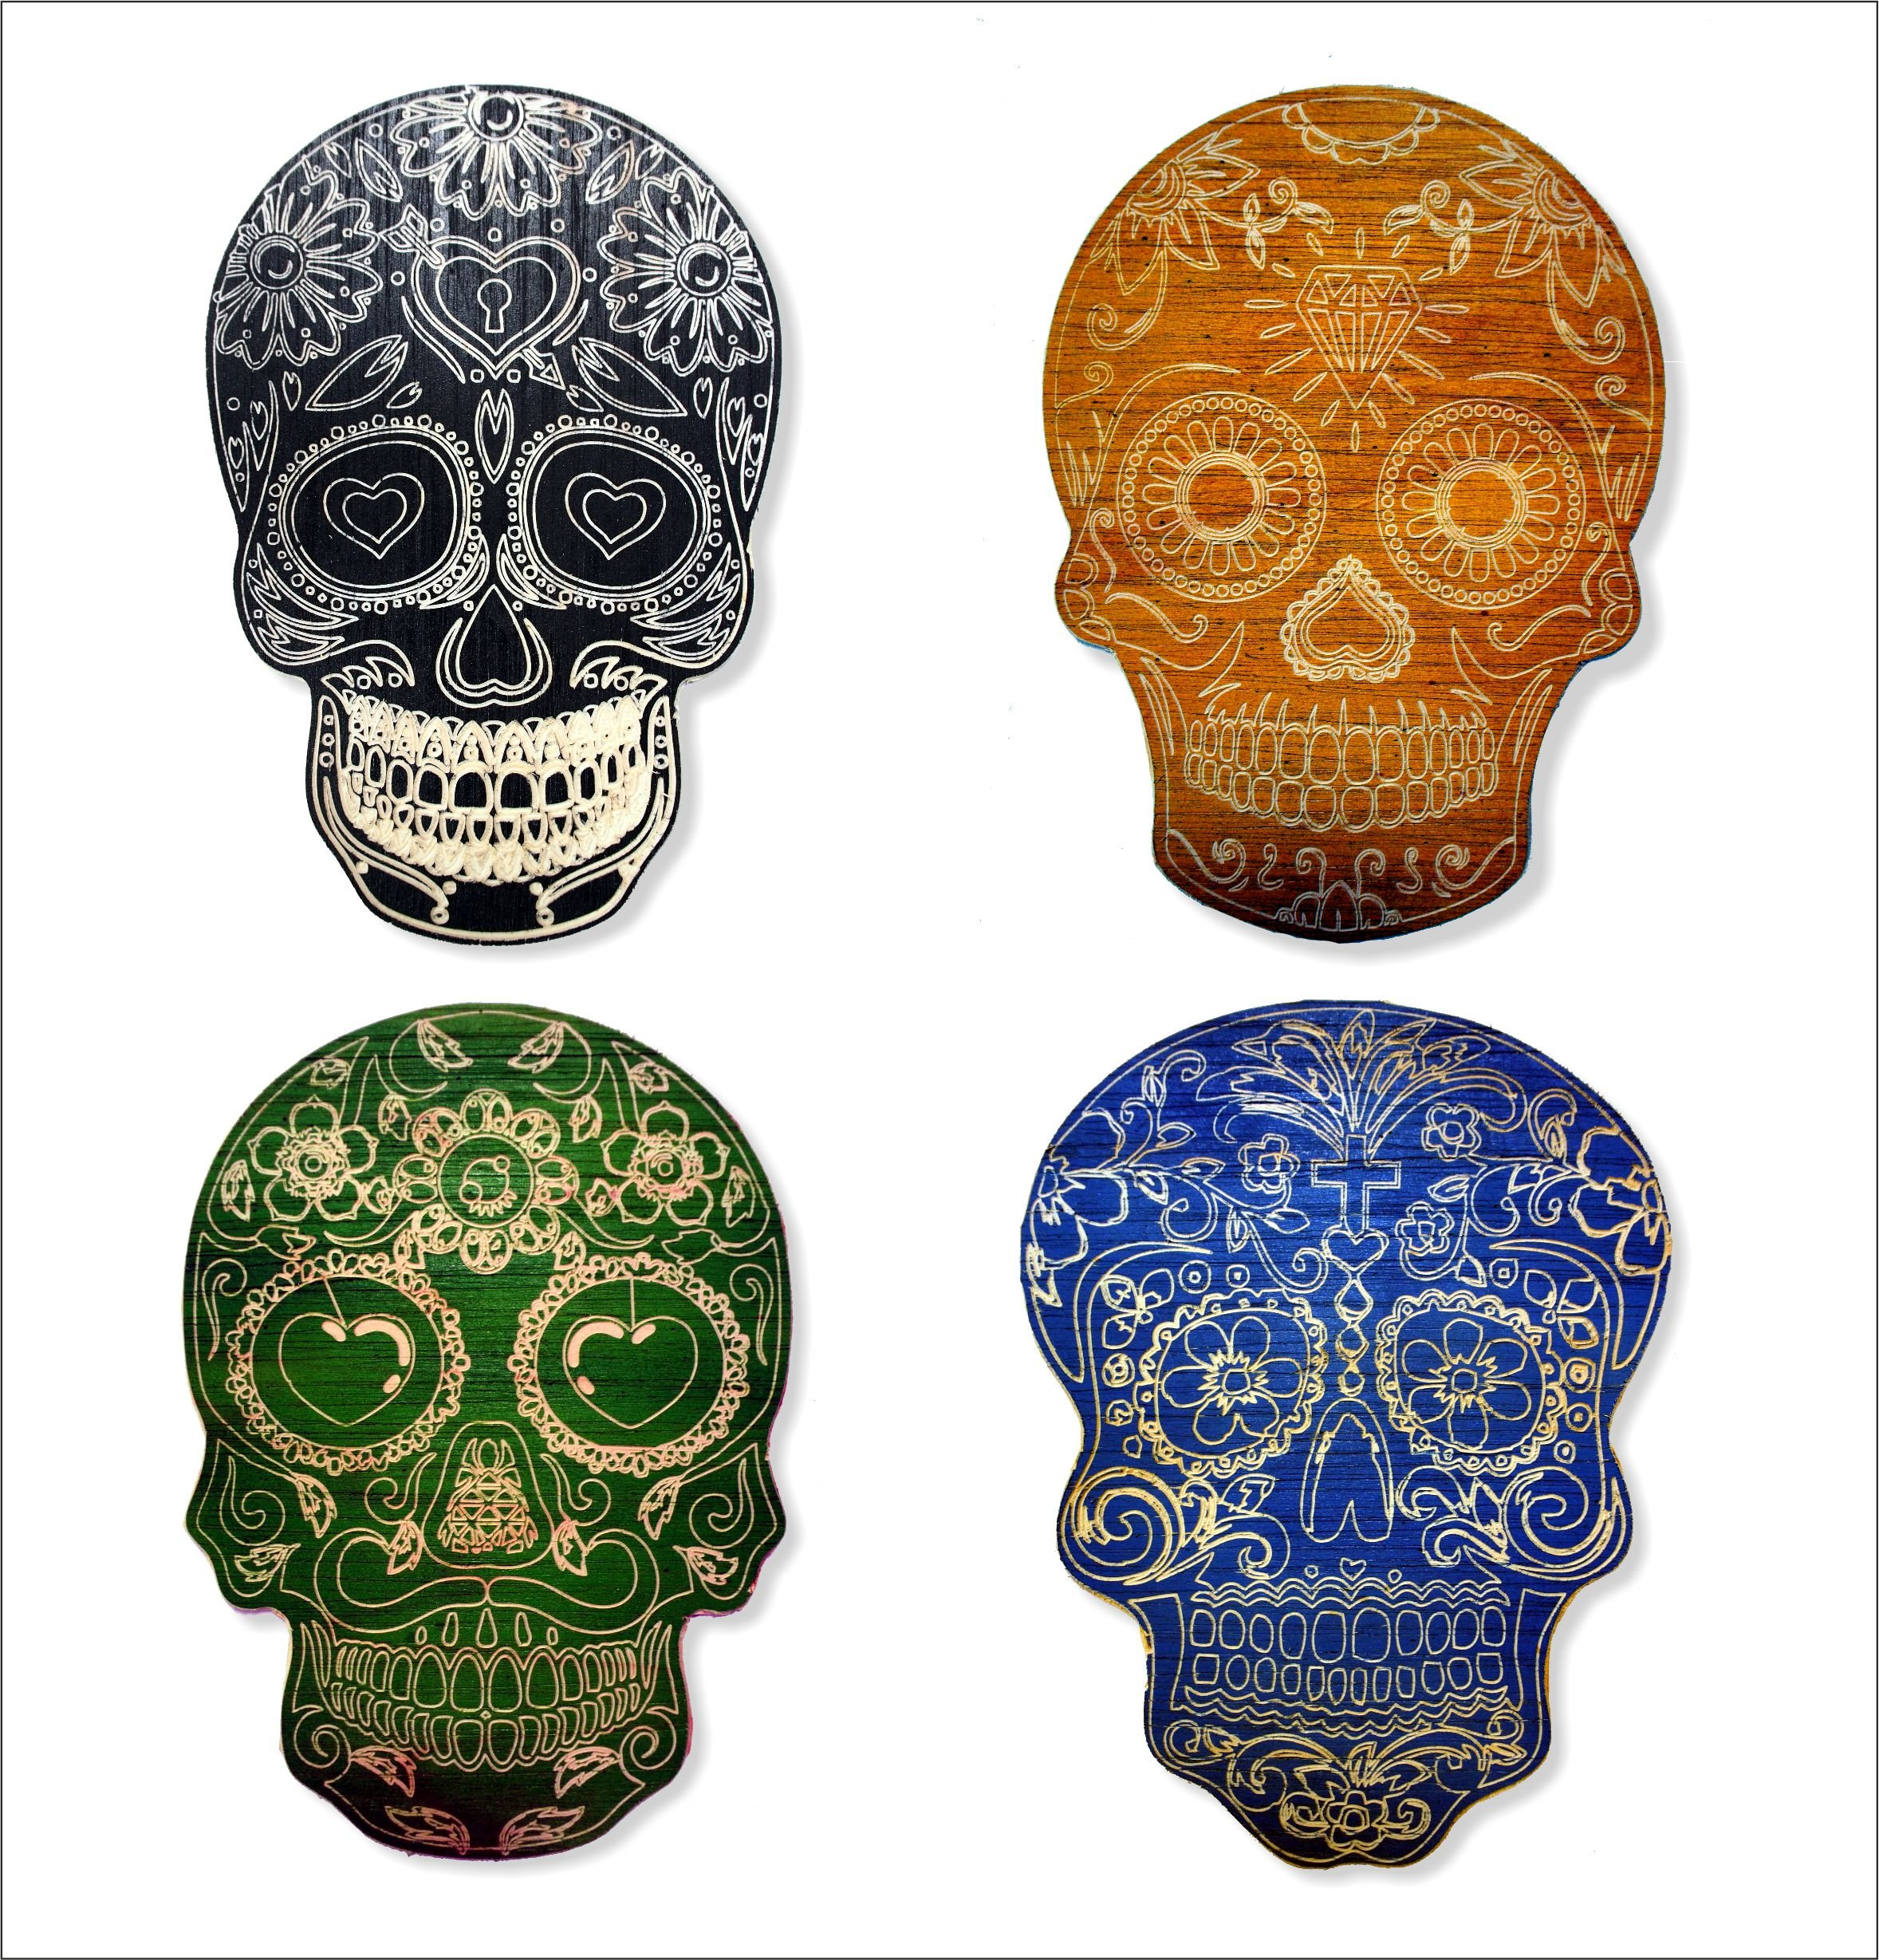 Wood Wall Art Decorative Skulls | Day of the Dead Vintage Wall Decor | Hand-carved Artwork on aged wood | 4 Pieces of 12'' x 9'' | Customized with the colors of your choice | Sugar Skulls Mexican art